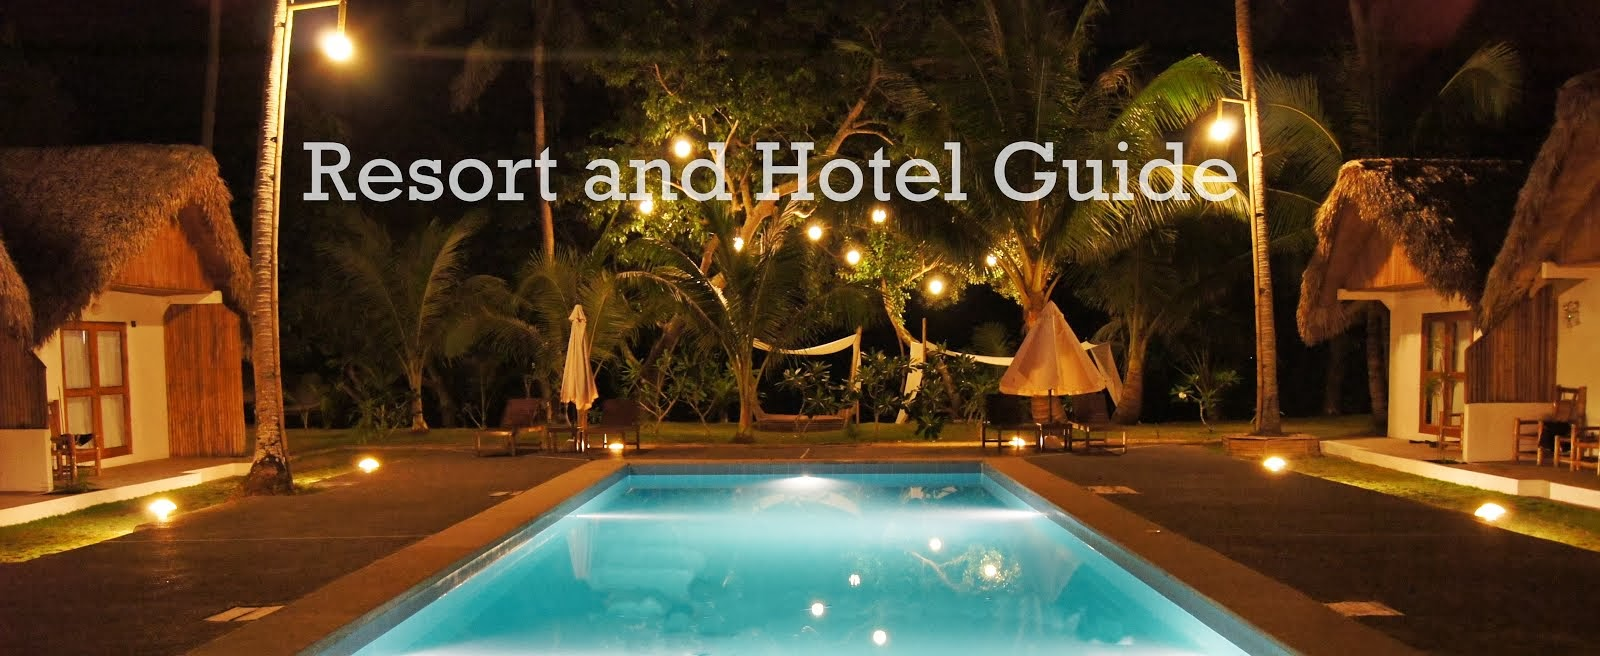 Resorts and Hotel Guide